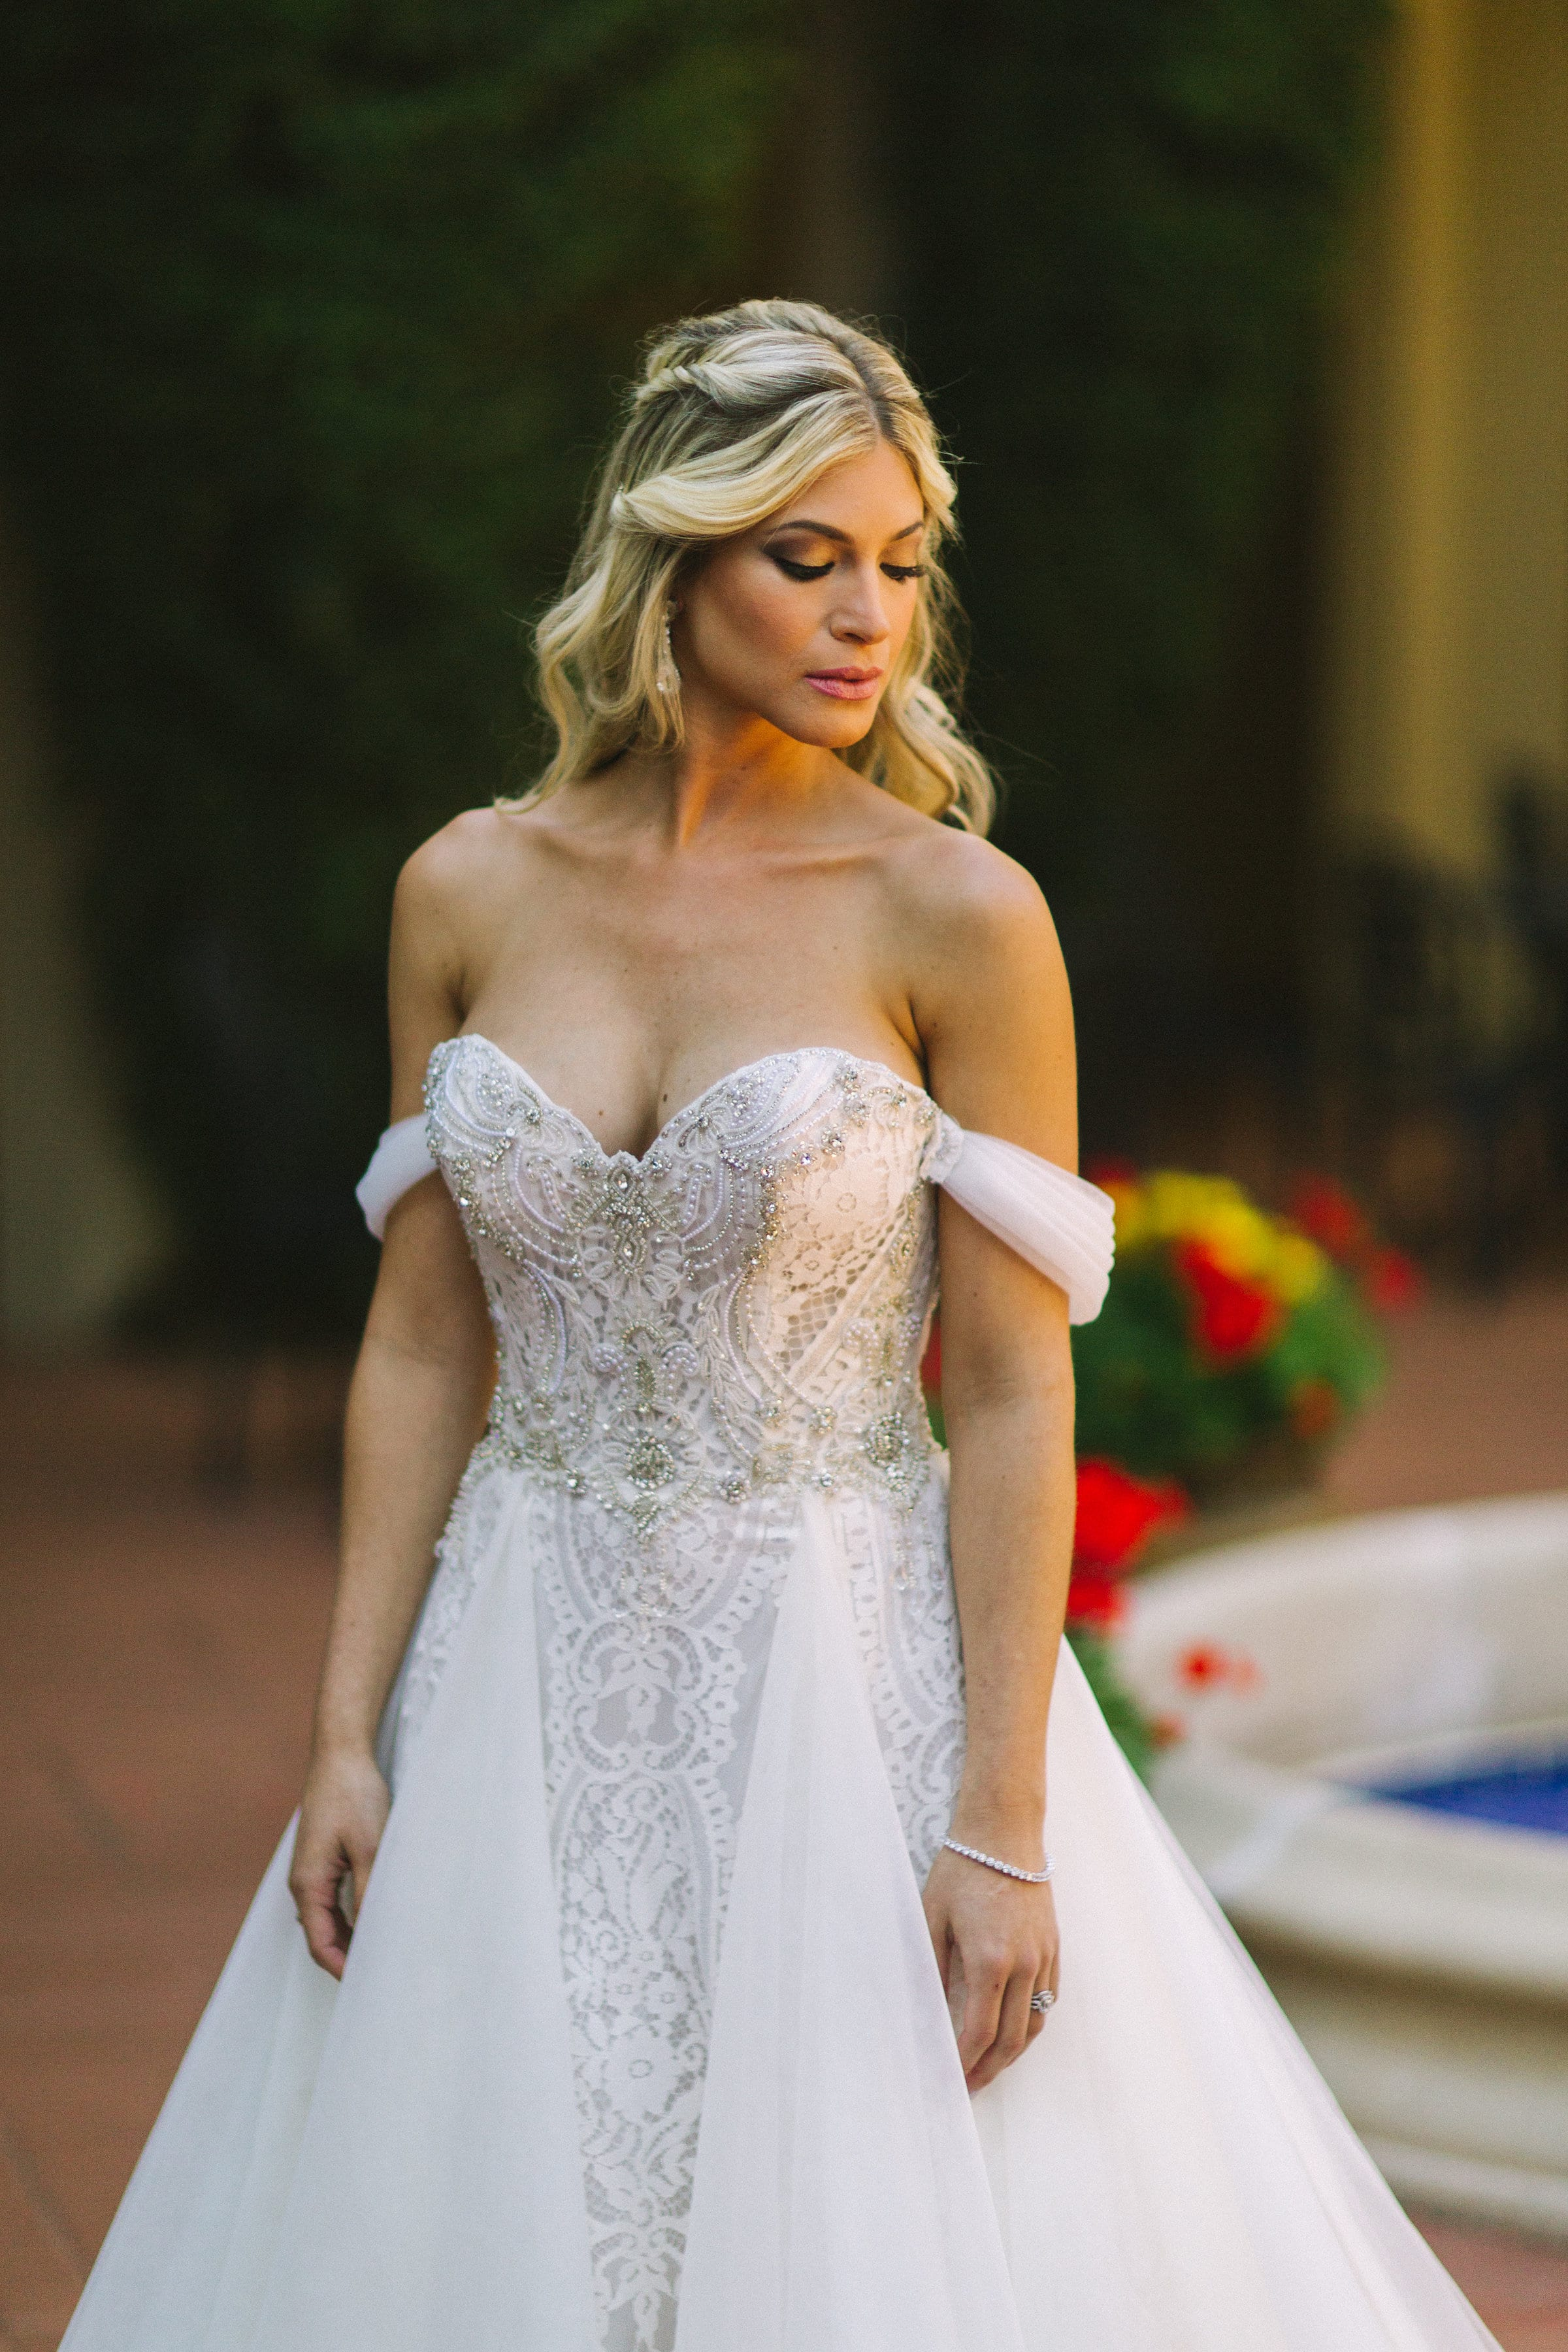 Bride in wedding dress with hanging straps